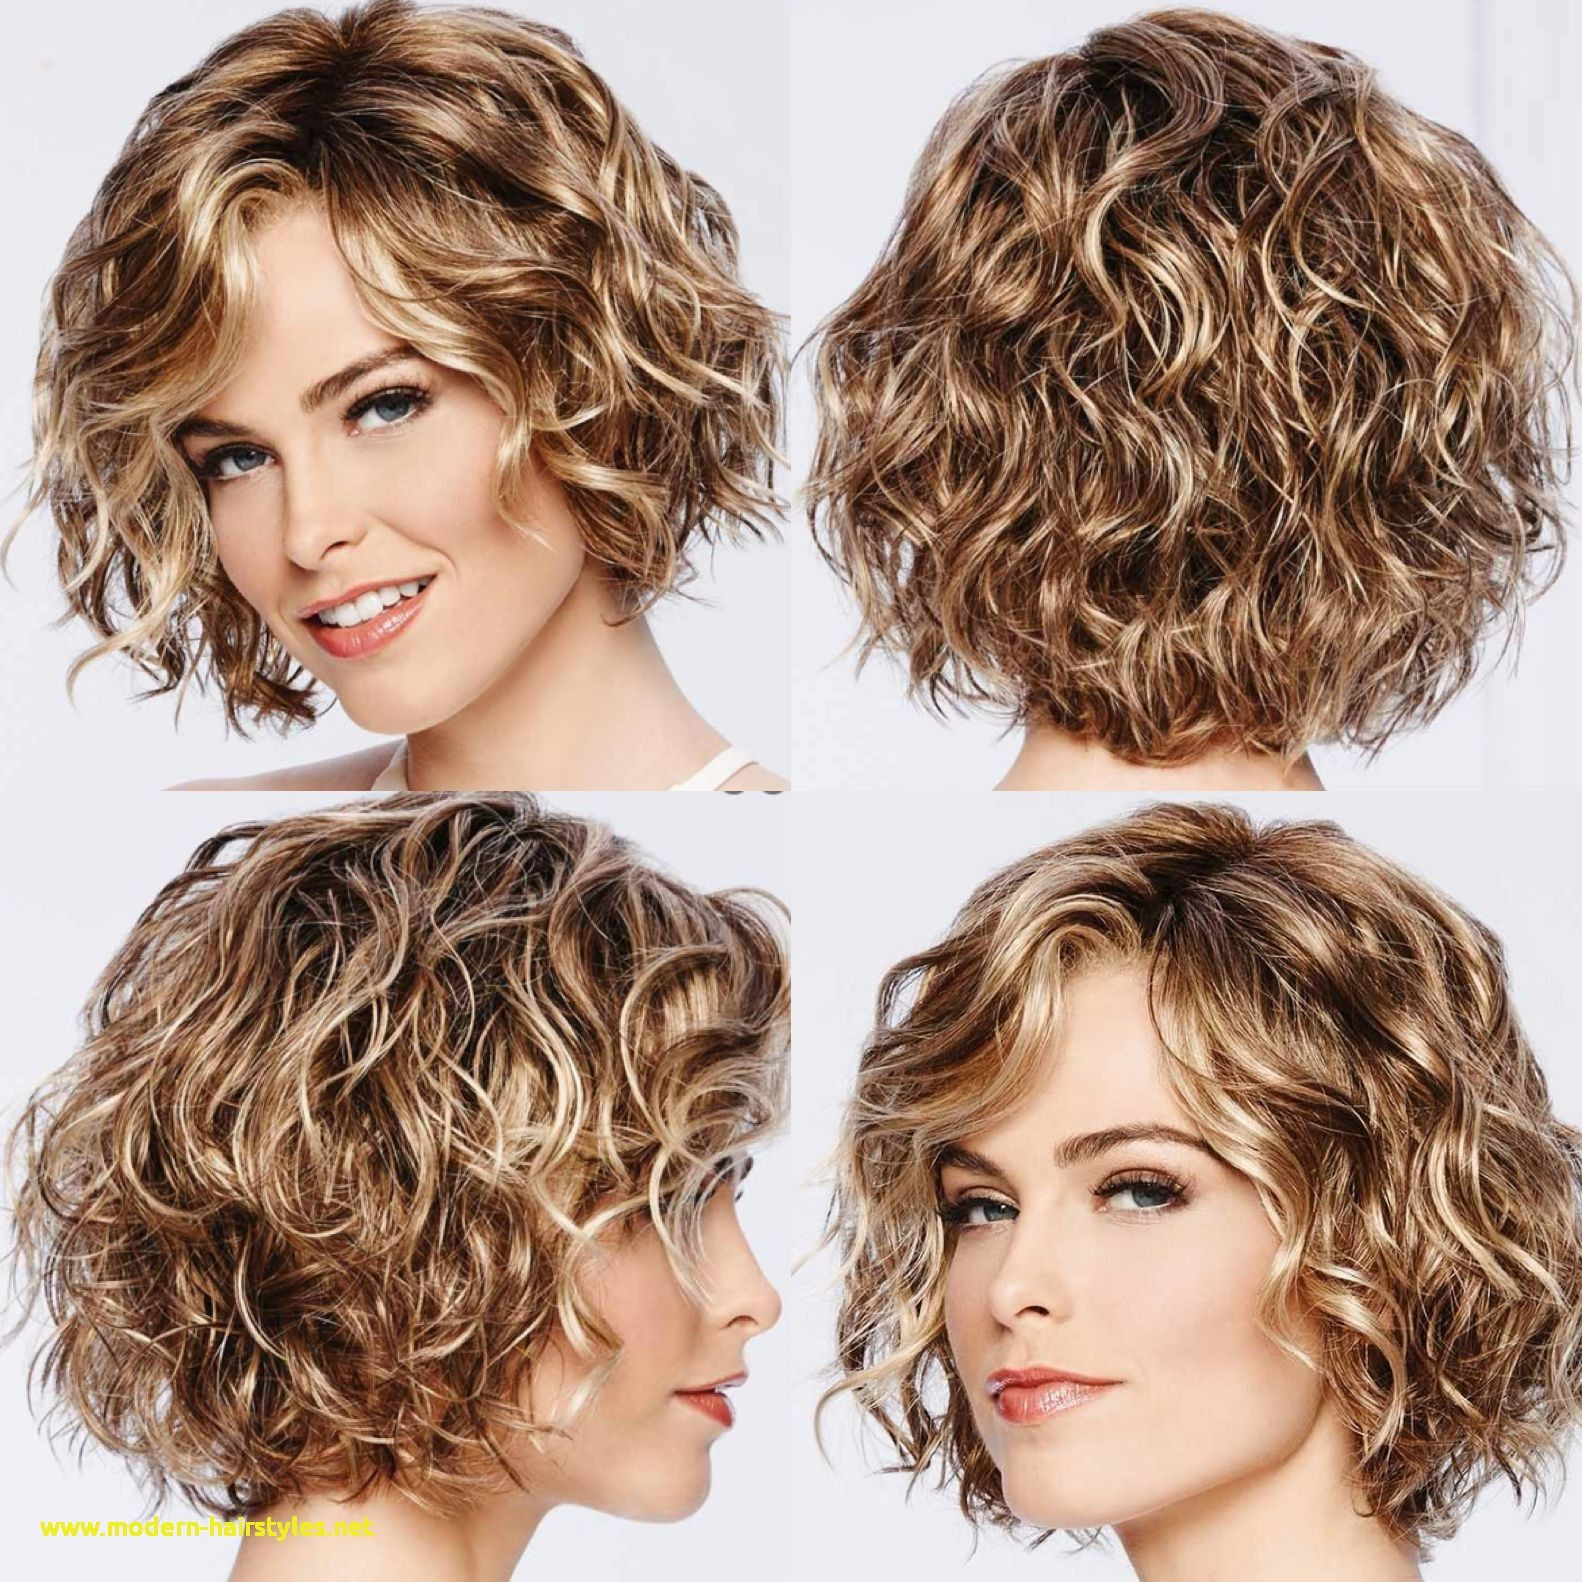 18+ Style of hair cropped close to scalp ideas